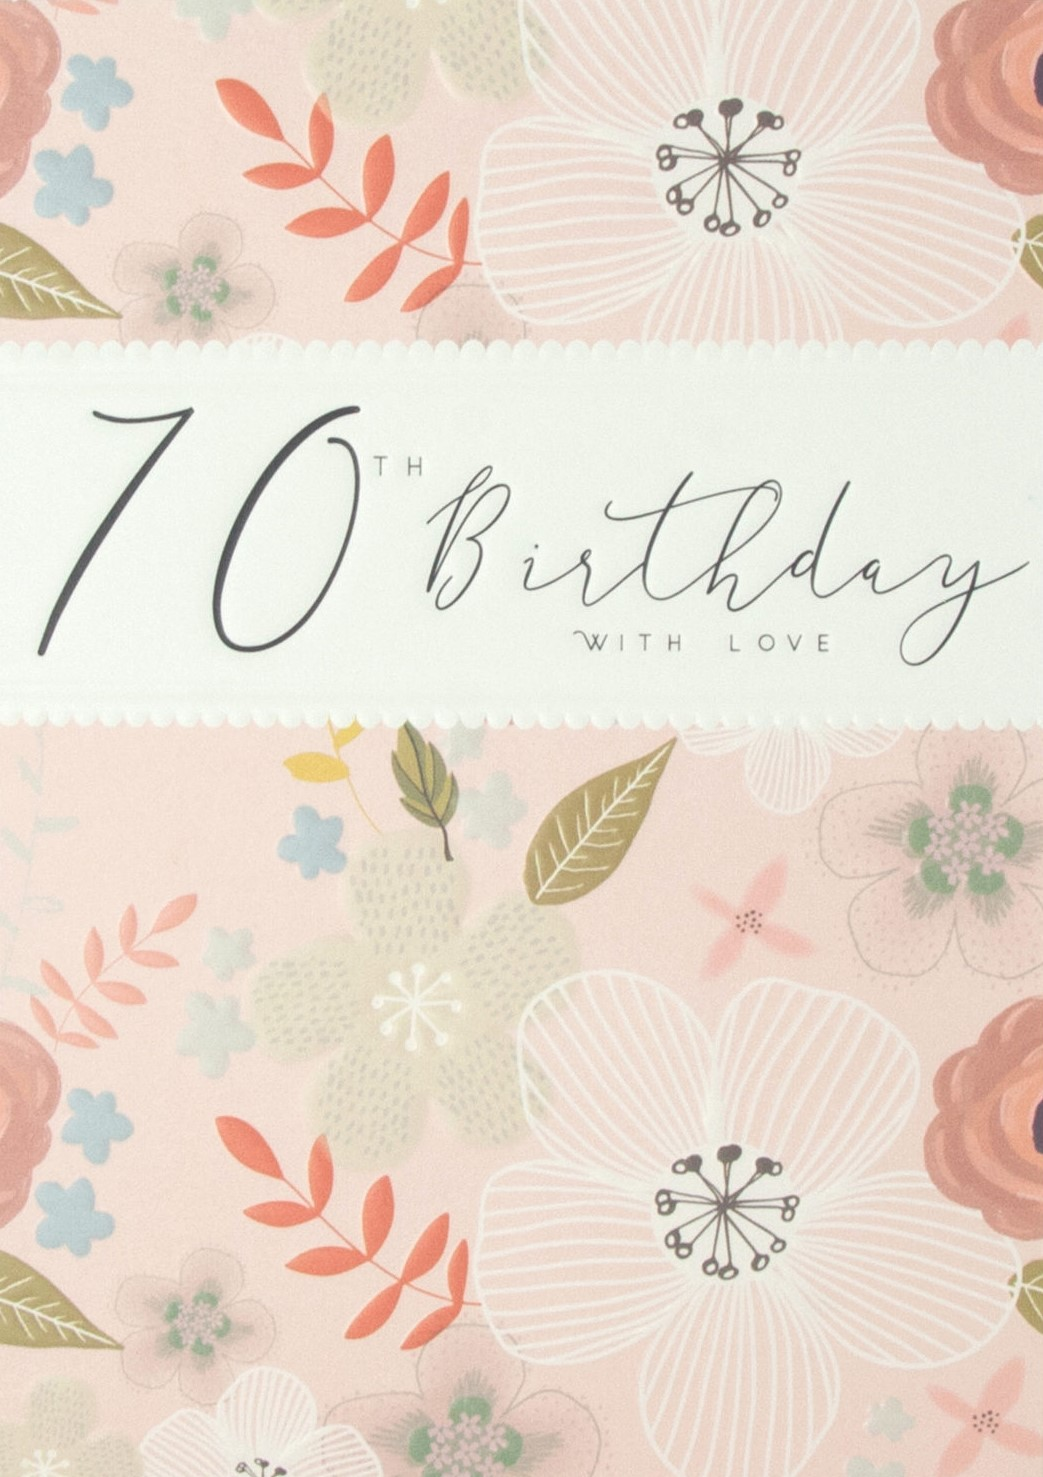 buy 70th birthday card for her online with pink flowers leaves contemporary age seventy seventieth female birthday cards buy online from karenza paperie